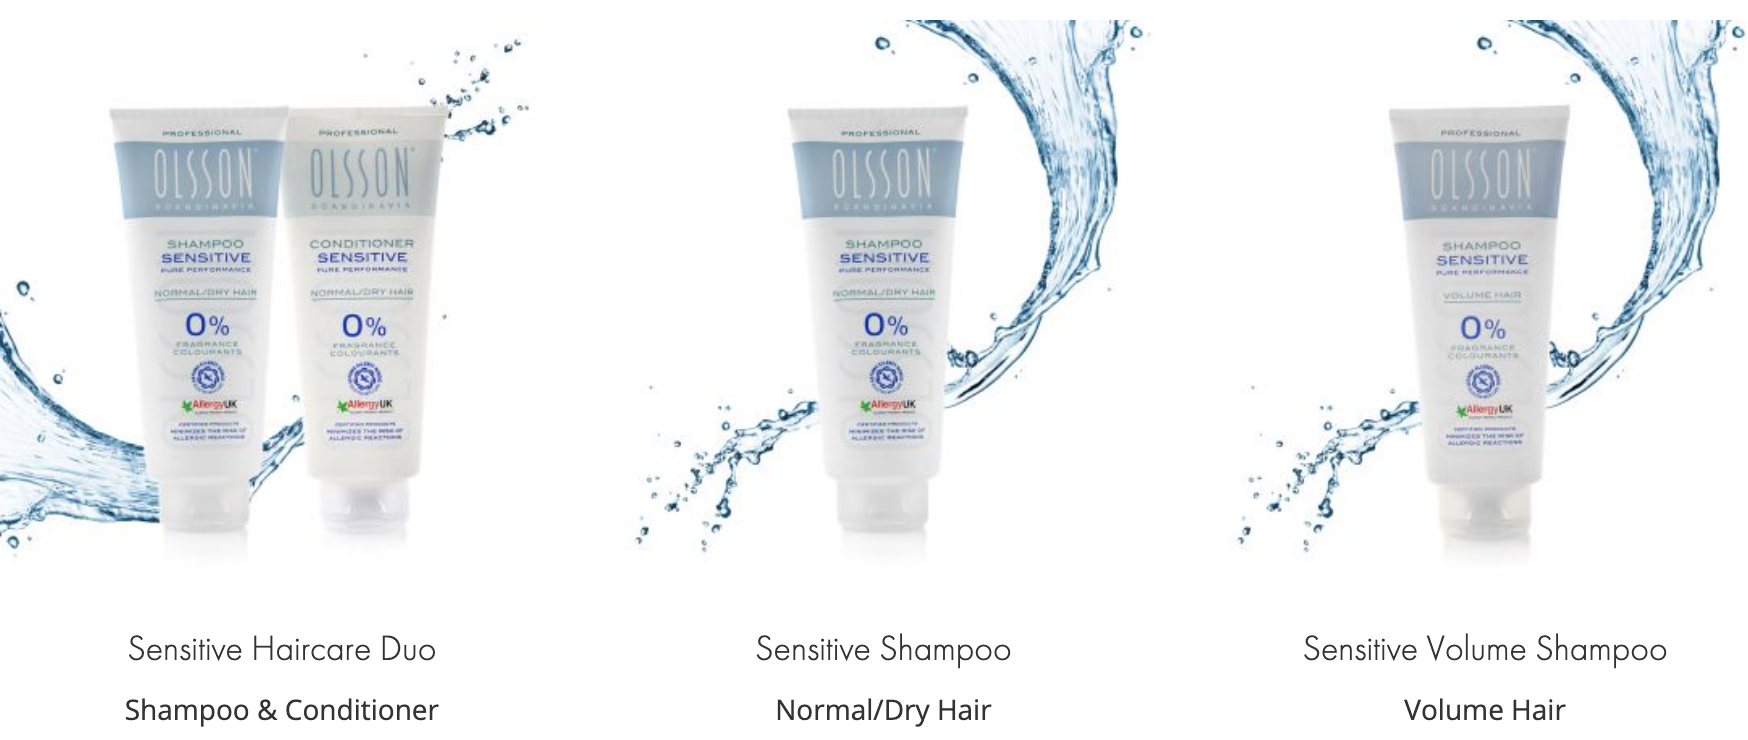 Gentle shampoo and conditioner